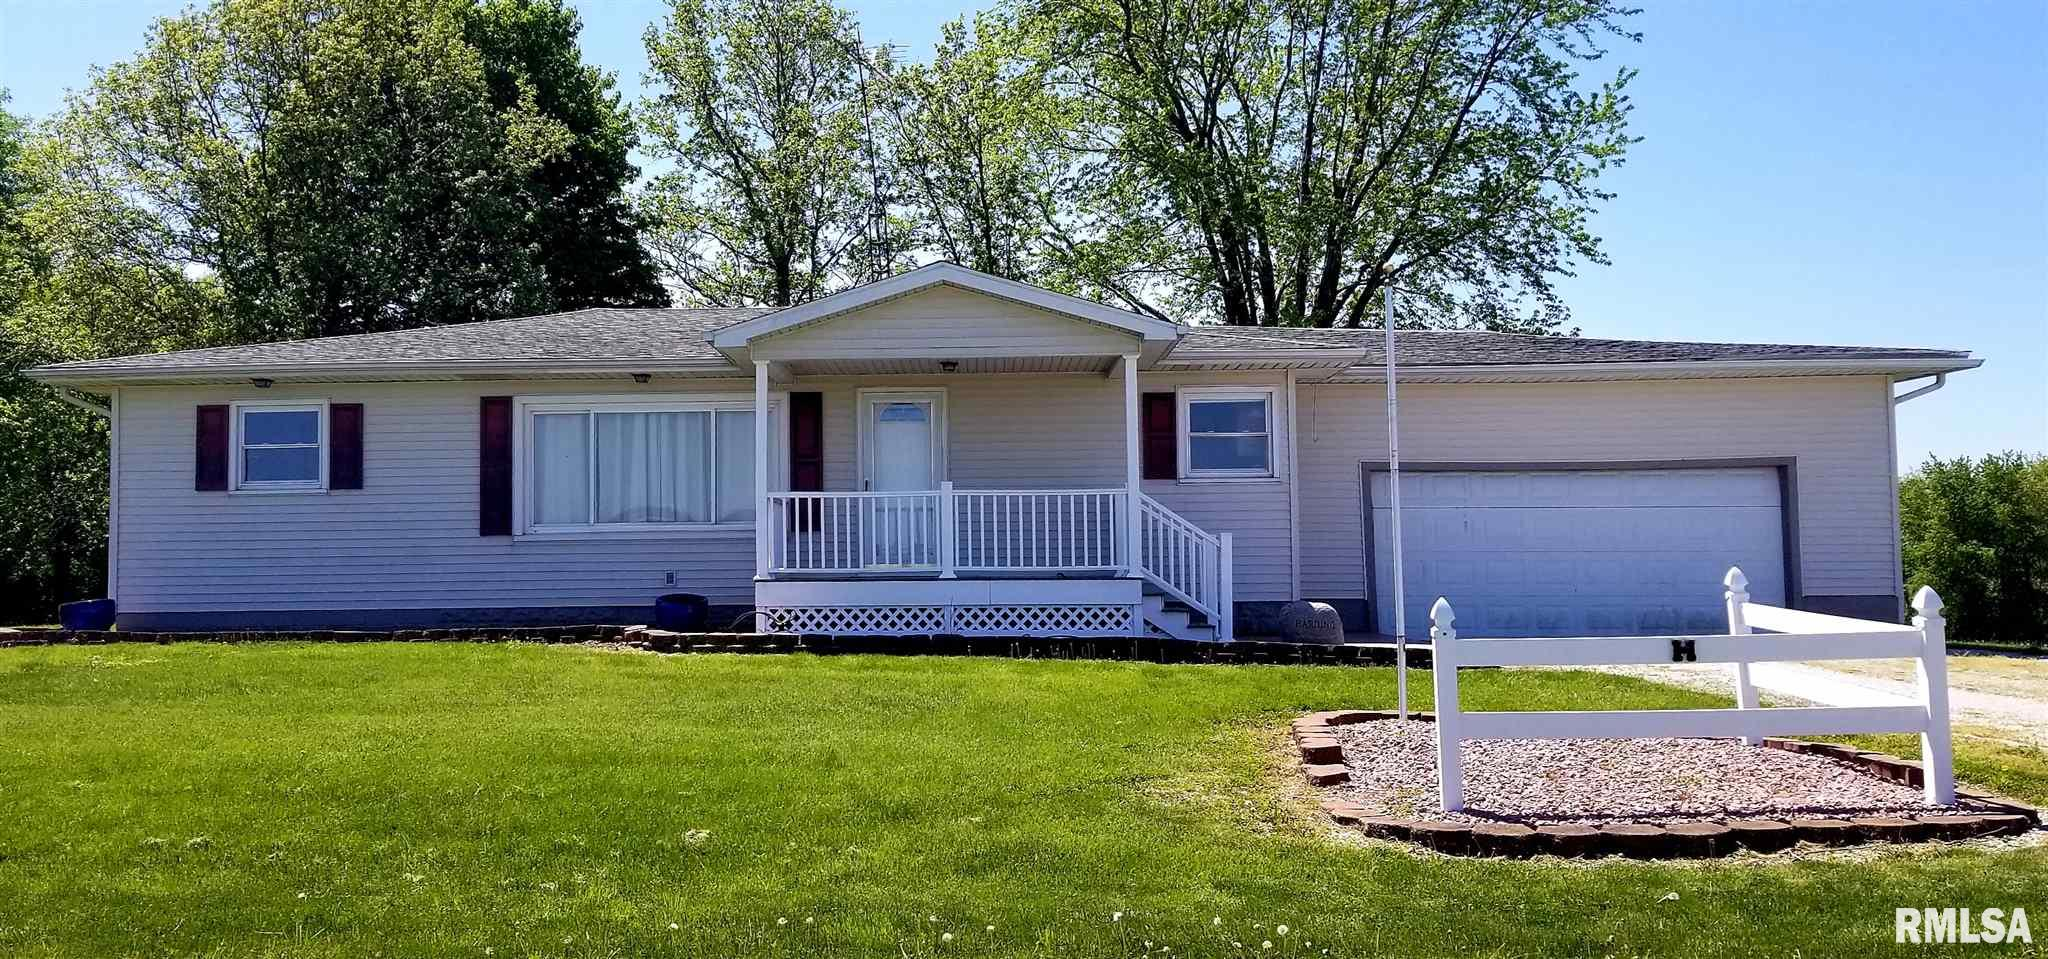 10975 Colbrook Property Photo - Carlinville, IL real estate listing